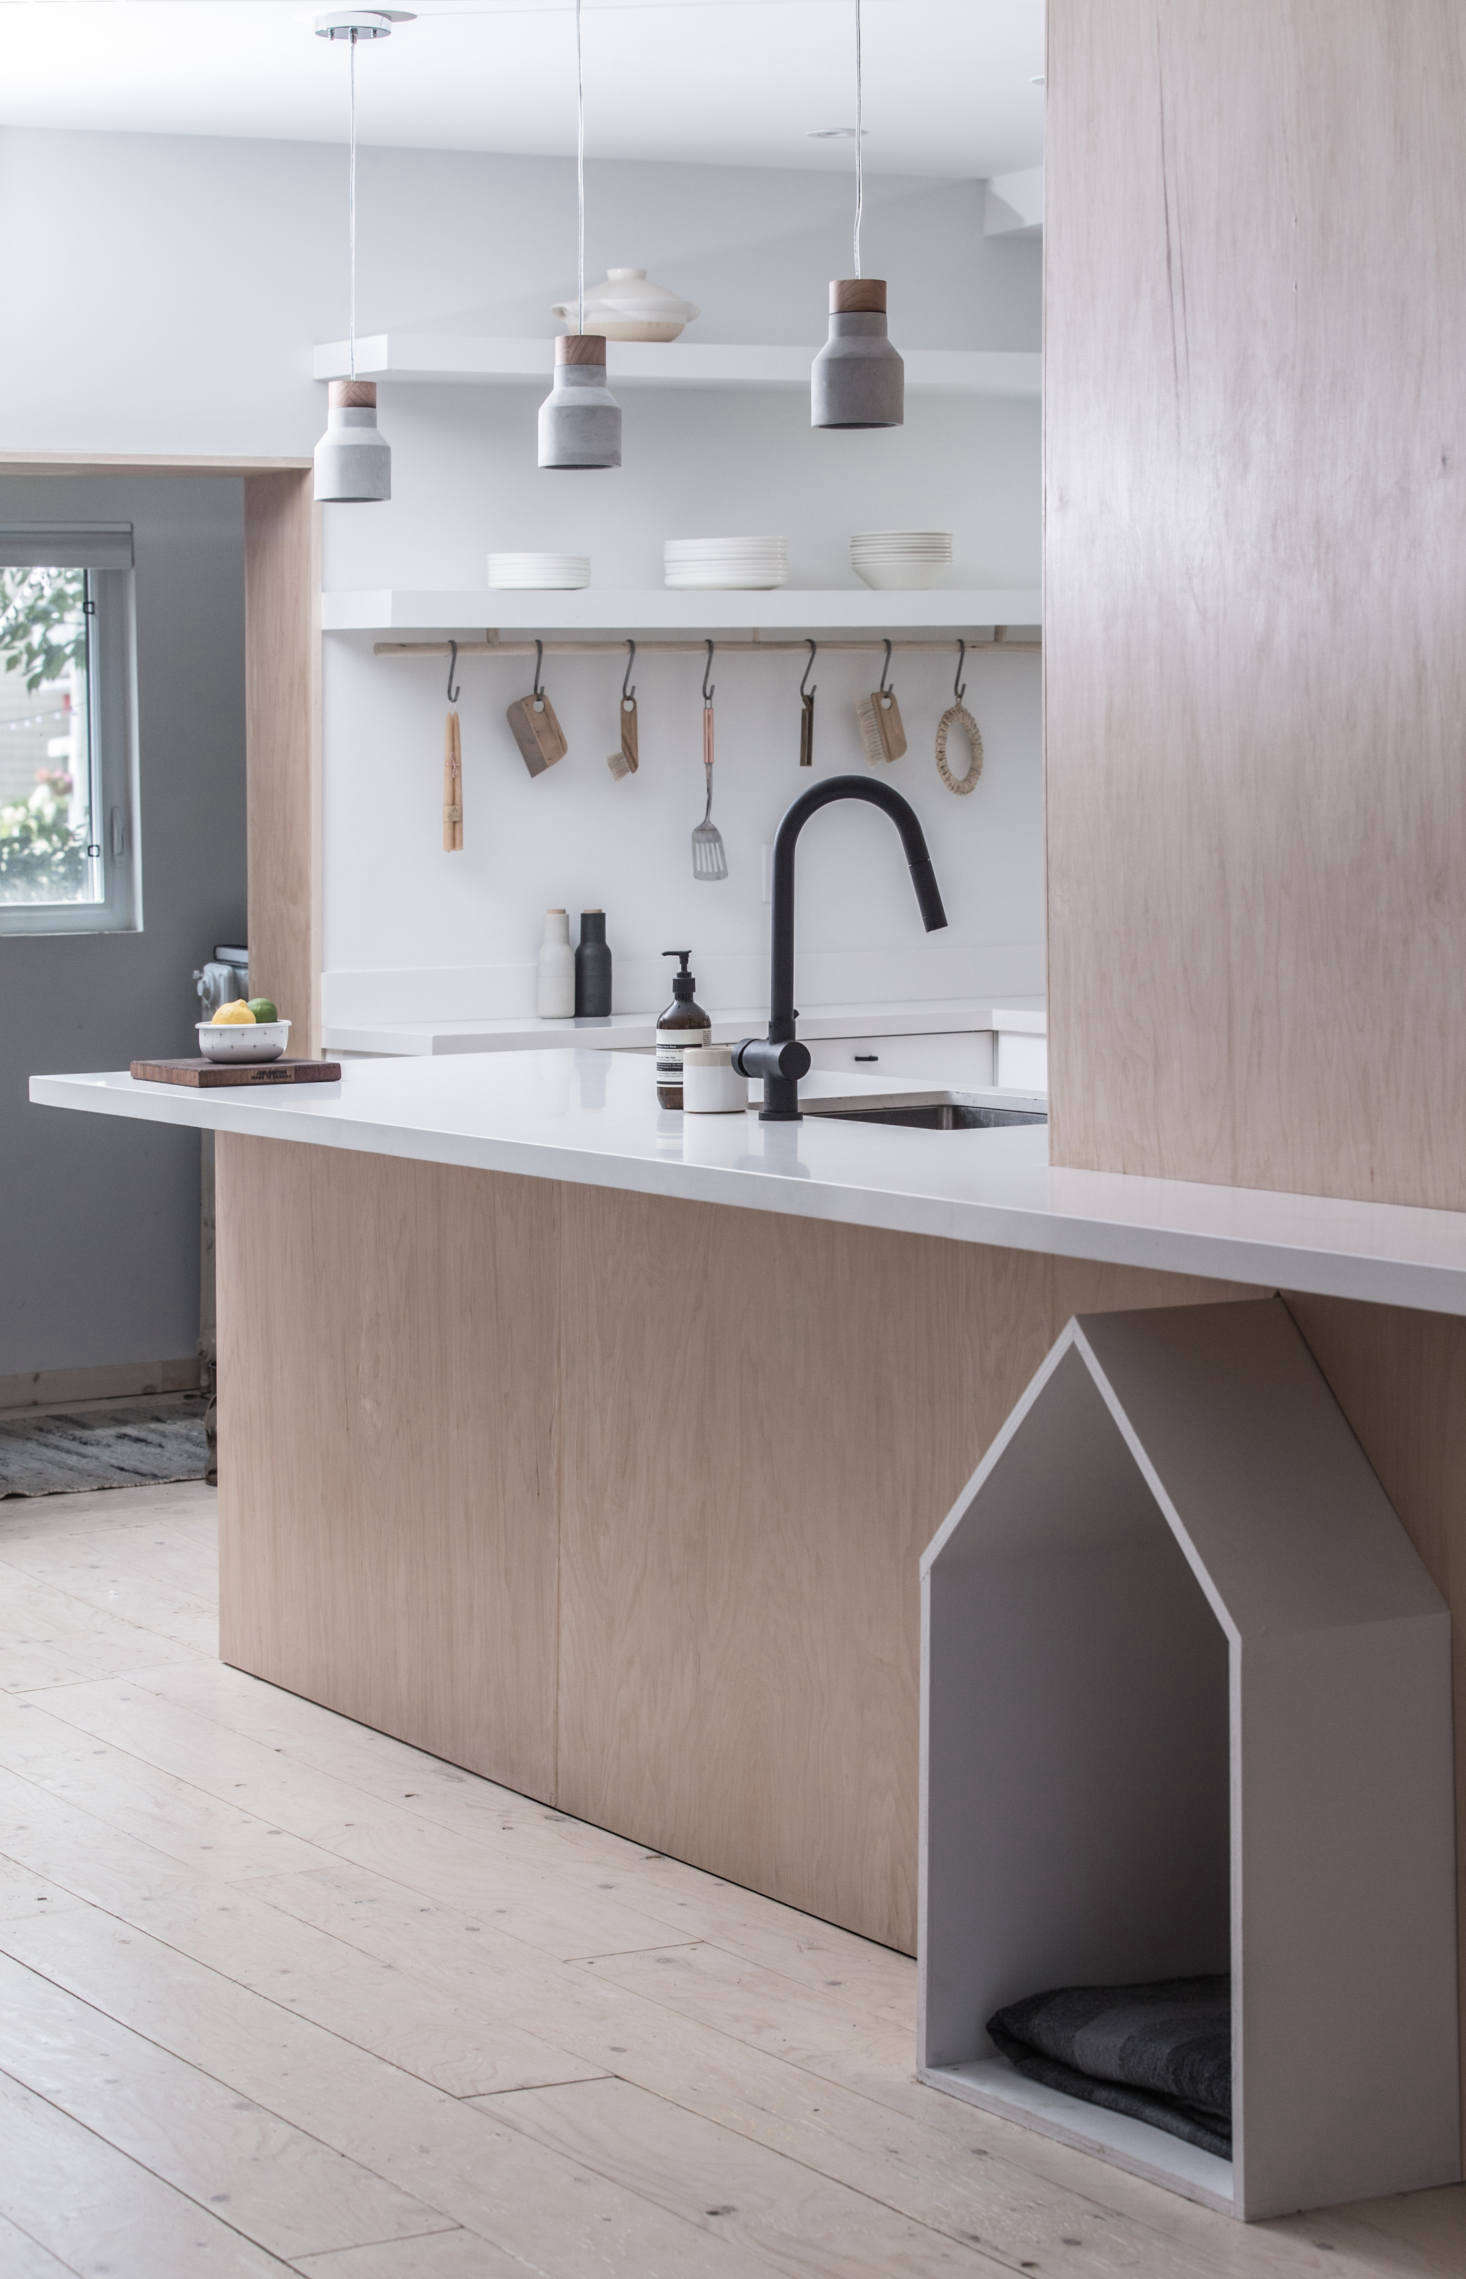 The matte black faucet is Vigo's Gramercy pull-down design; $169.90 from Build.com. The hanging ceramic lights were supplied by the clients; for something similar see 10 Easy Pieces: Terracotta Pendant Lights.